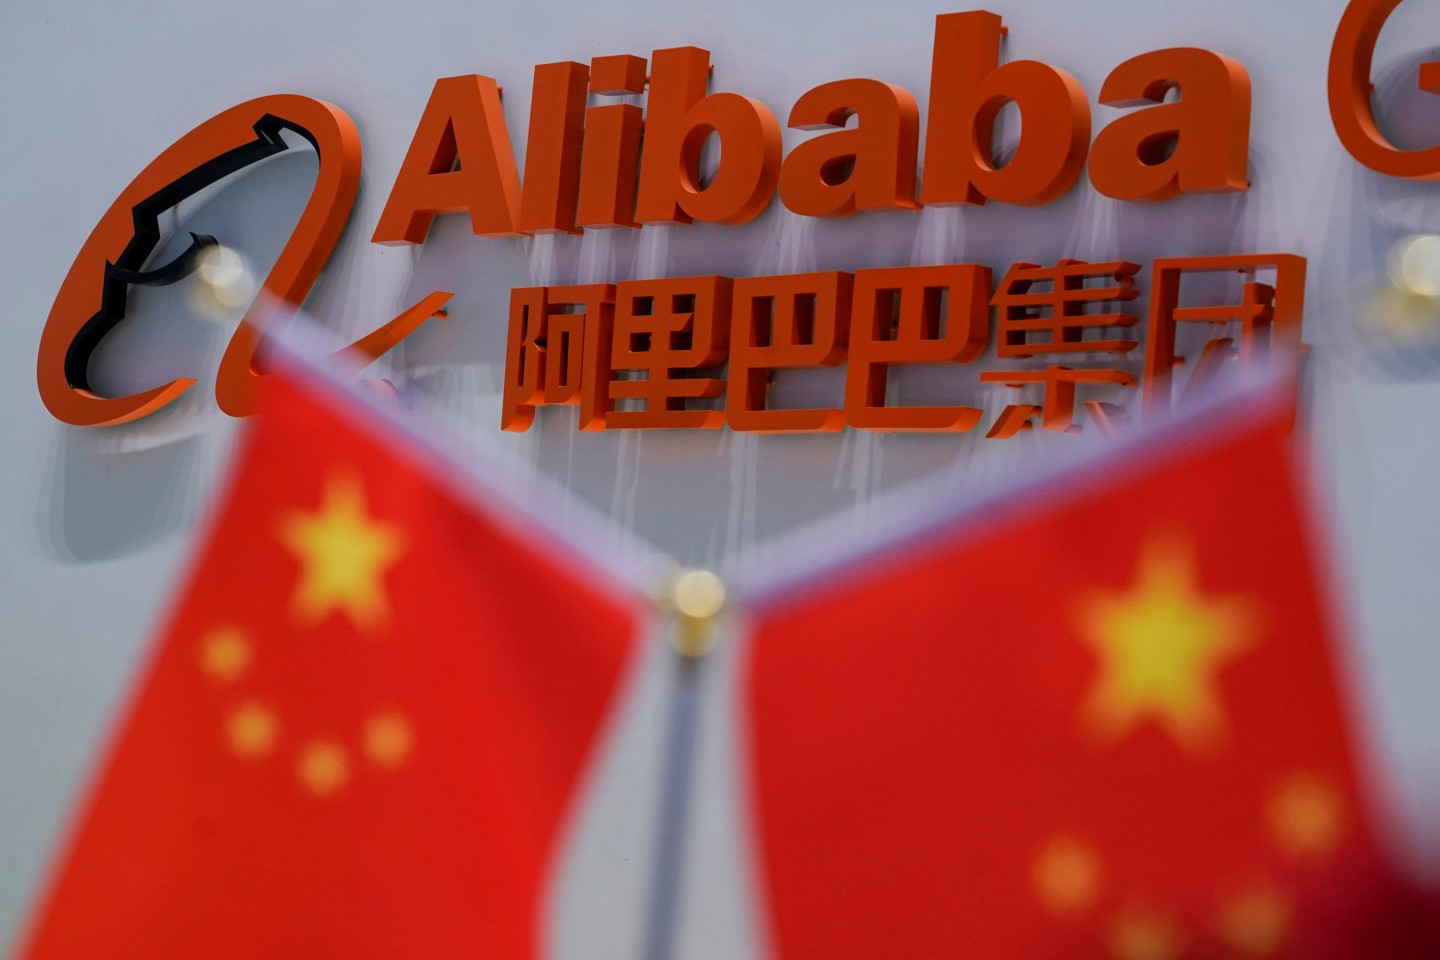 A logo of Alibaba Group is seen at the company's headquarters in Hangzhou, Zhejiang province, China. (REUTERS/Aly Song/File Photo)